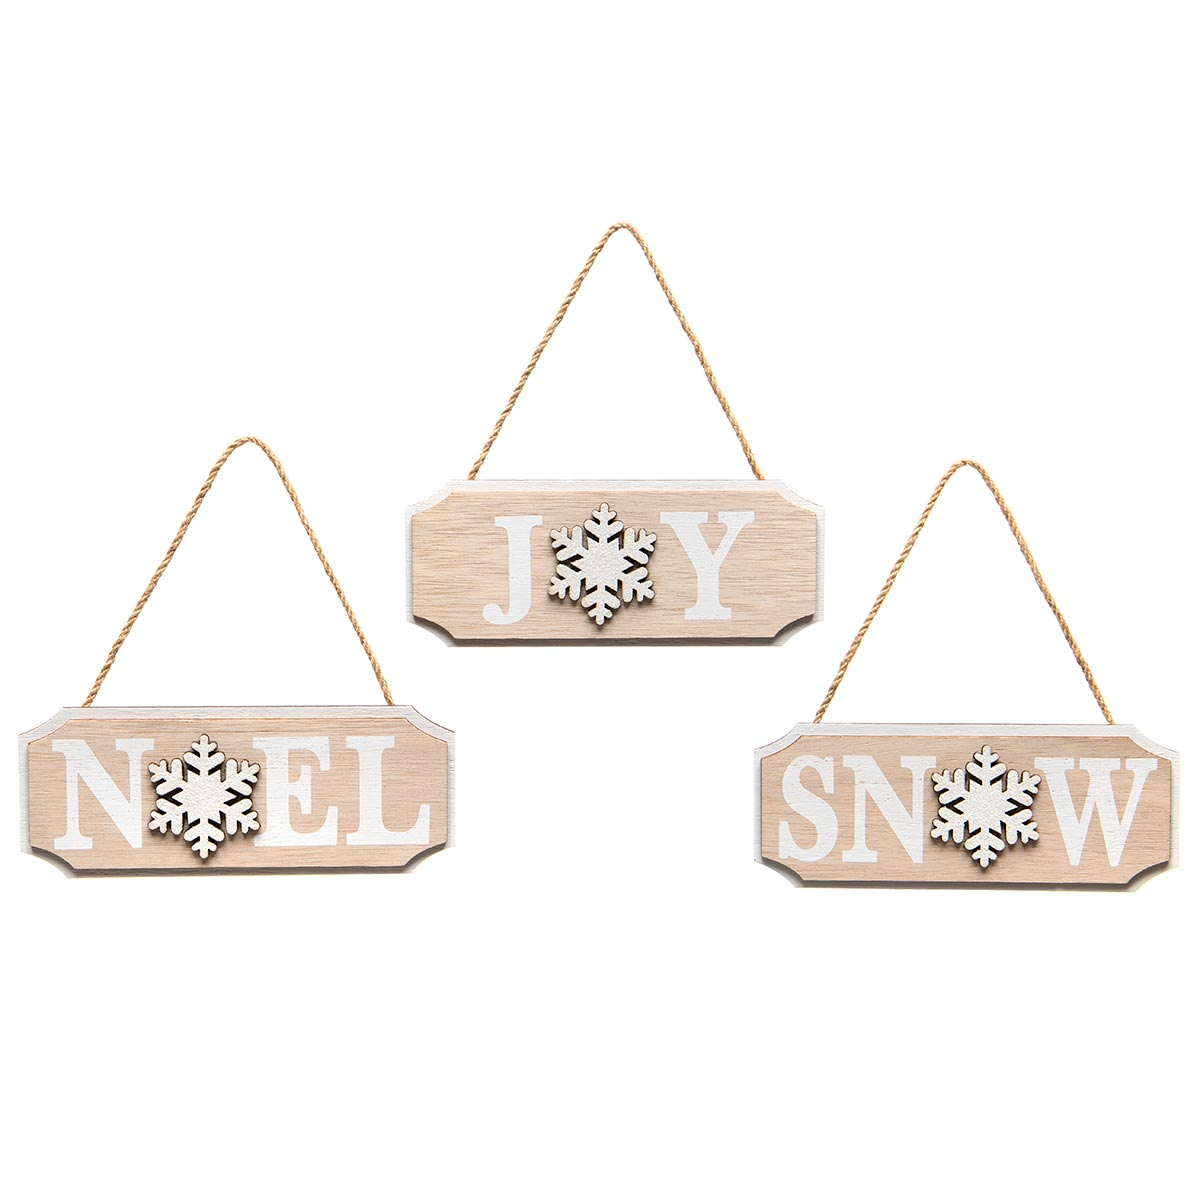 SNOWFLAKE WOOD HANGING SIGN NATURAL/WHITE WITH GLITTER